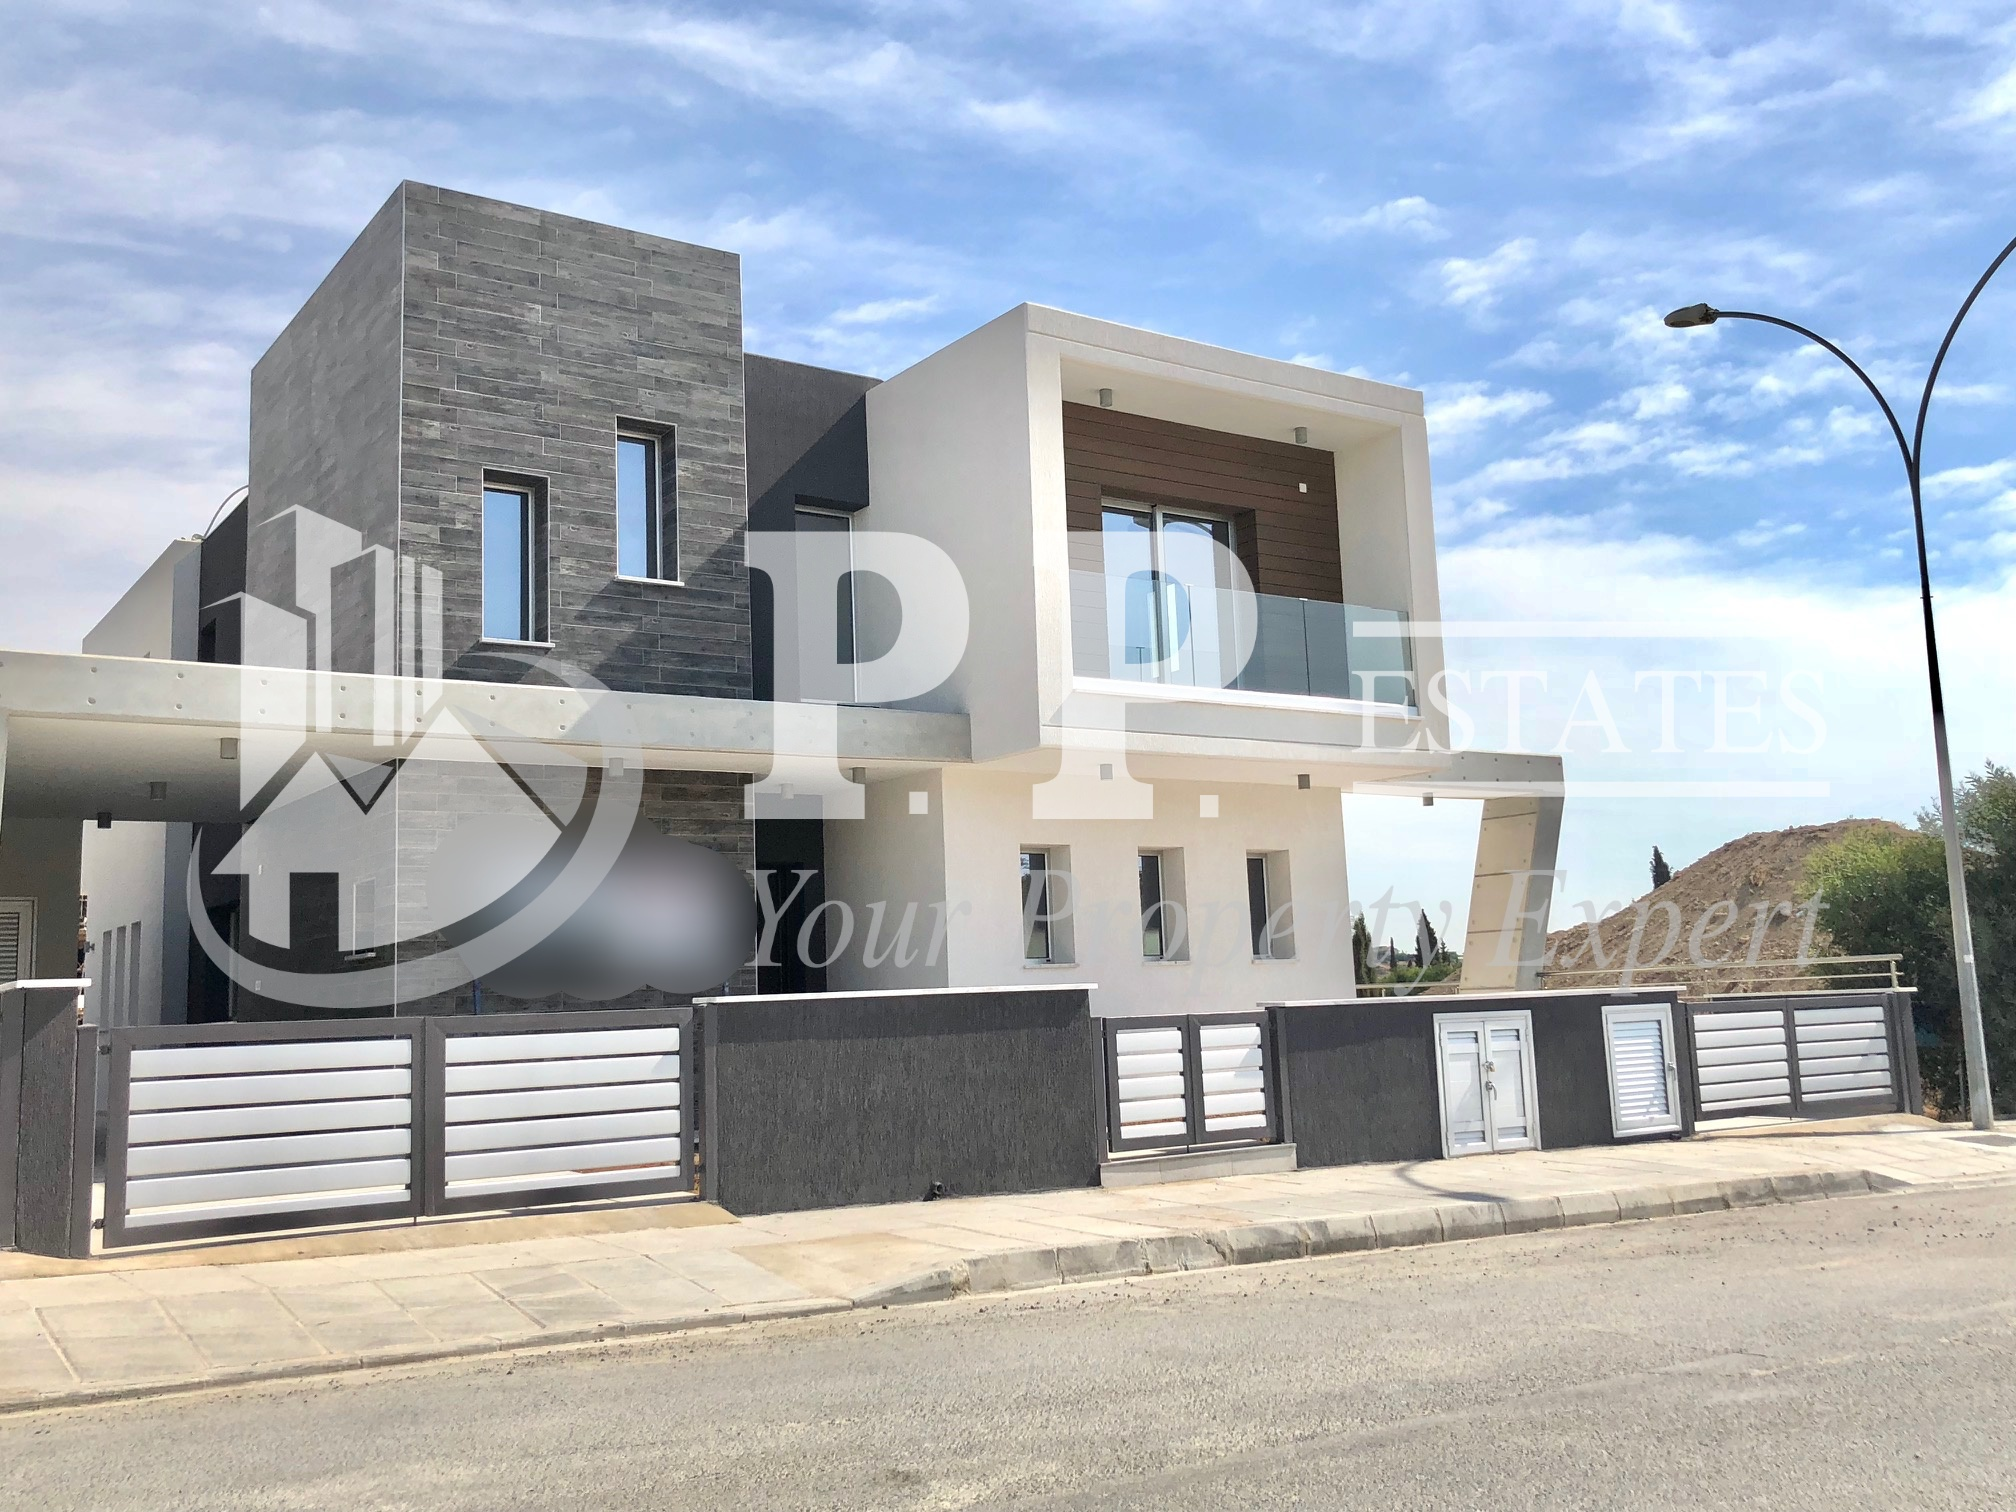 For Sale – Brand new 4 bedroom detached house in Agios Athanasios, Limassol.